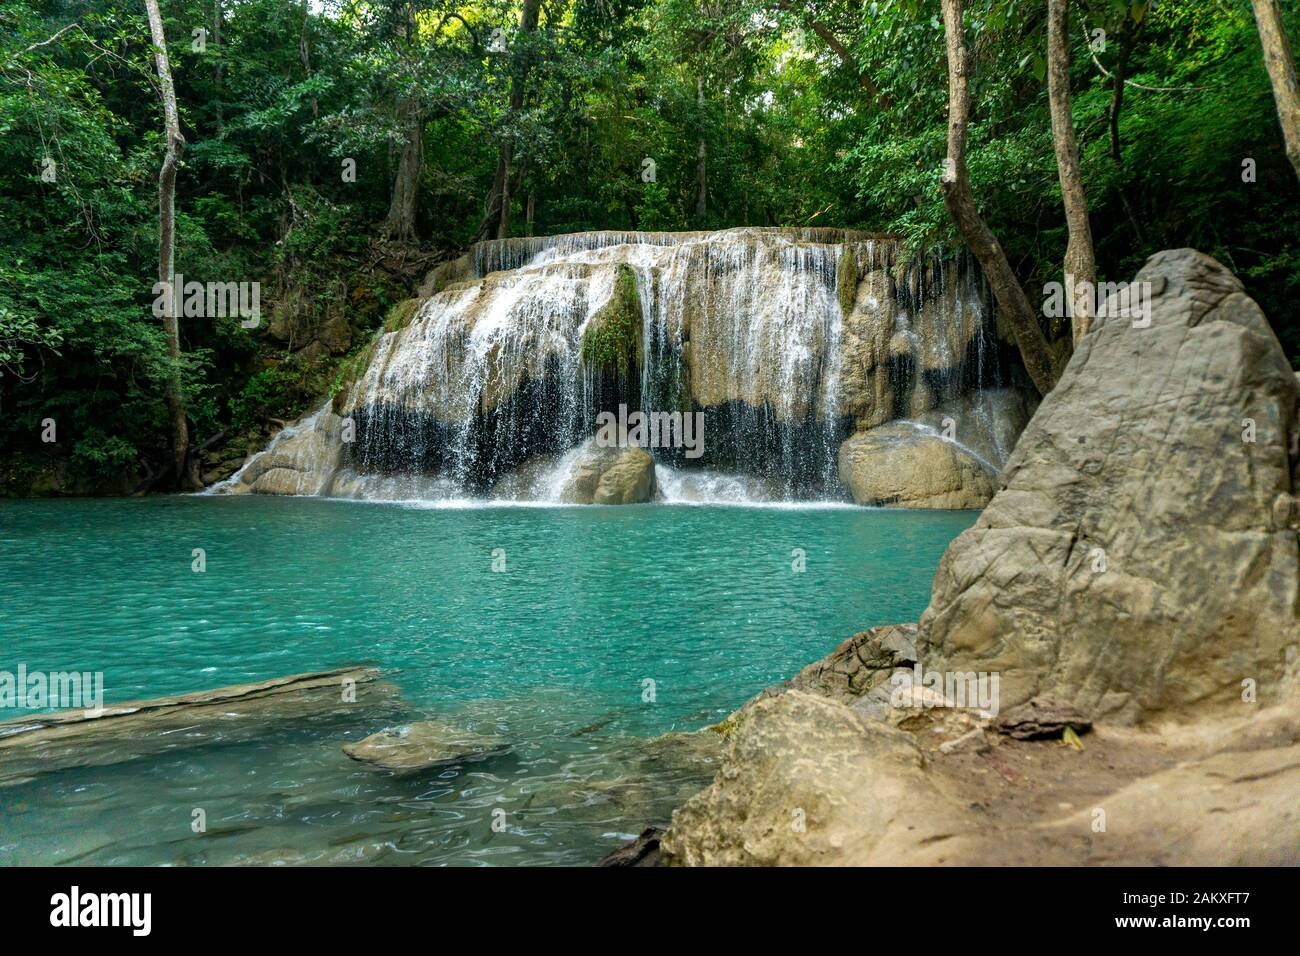 Thailand Water Fall Stock Photos Thailand Water Fall Stock Images, Photos, Reviews